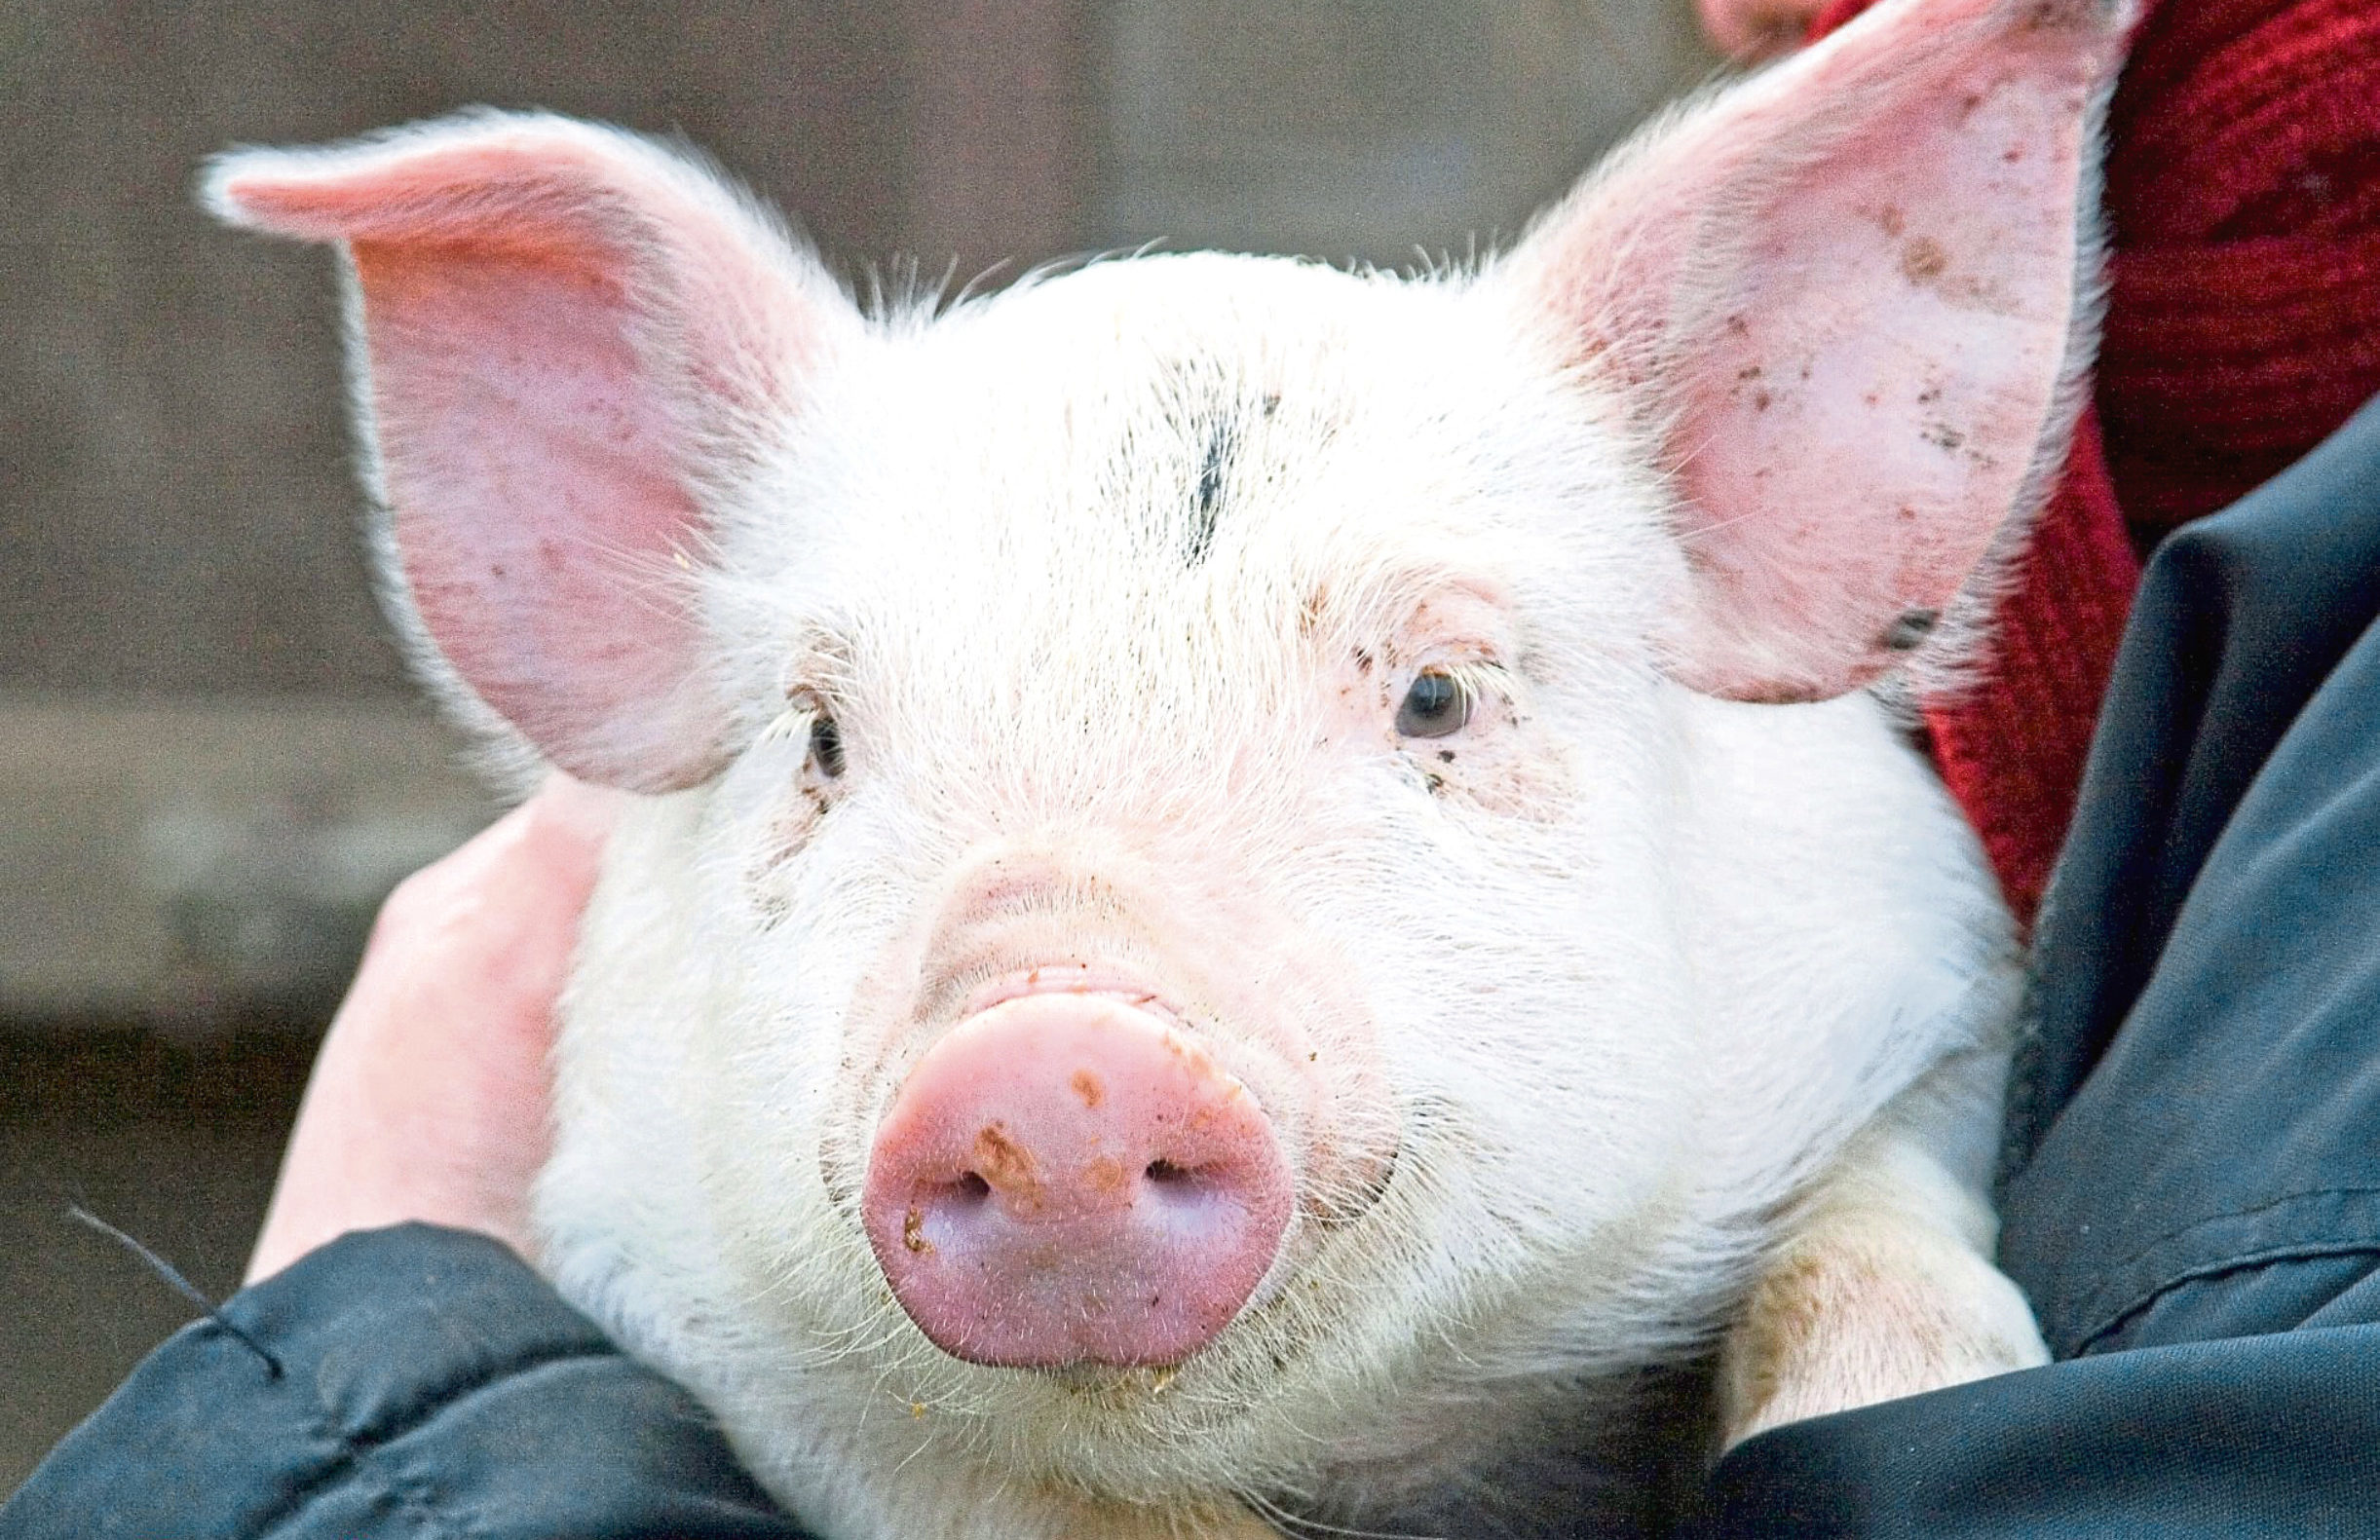 Babe the pig has passed away